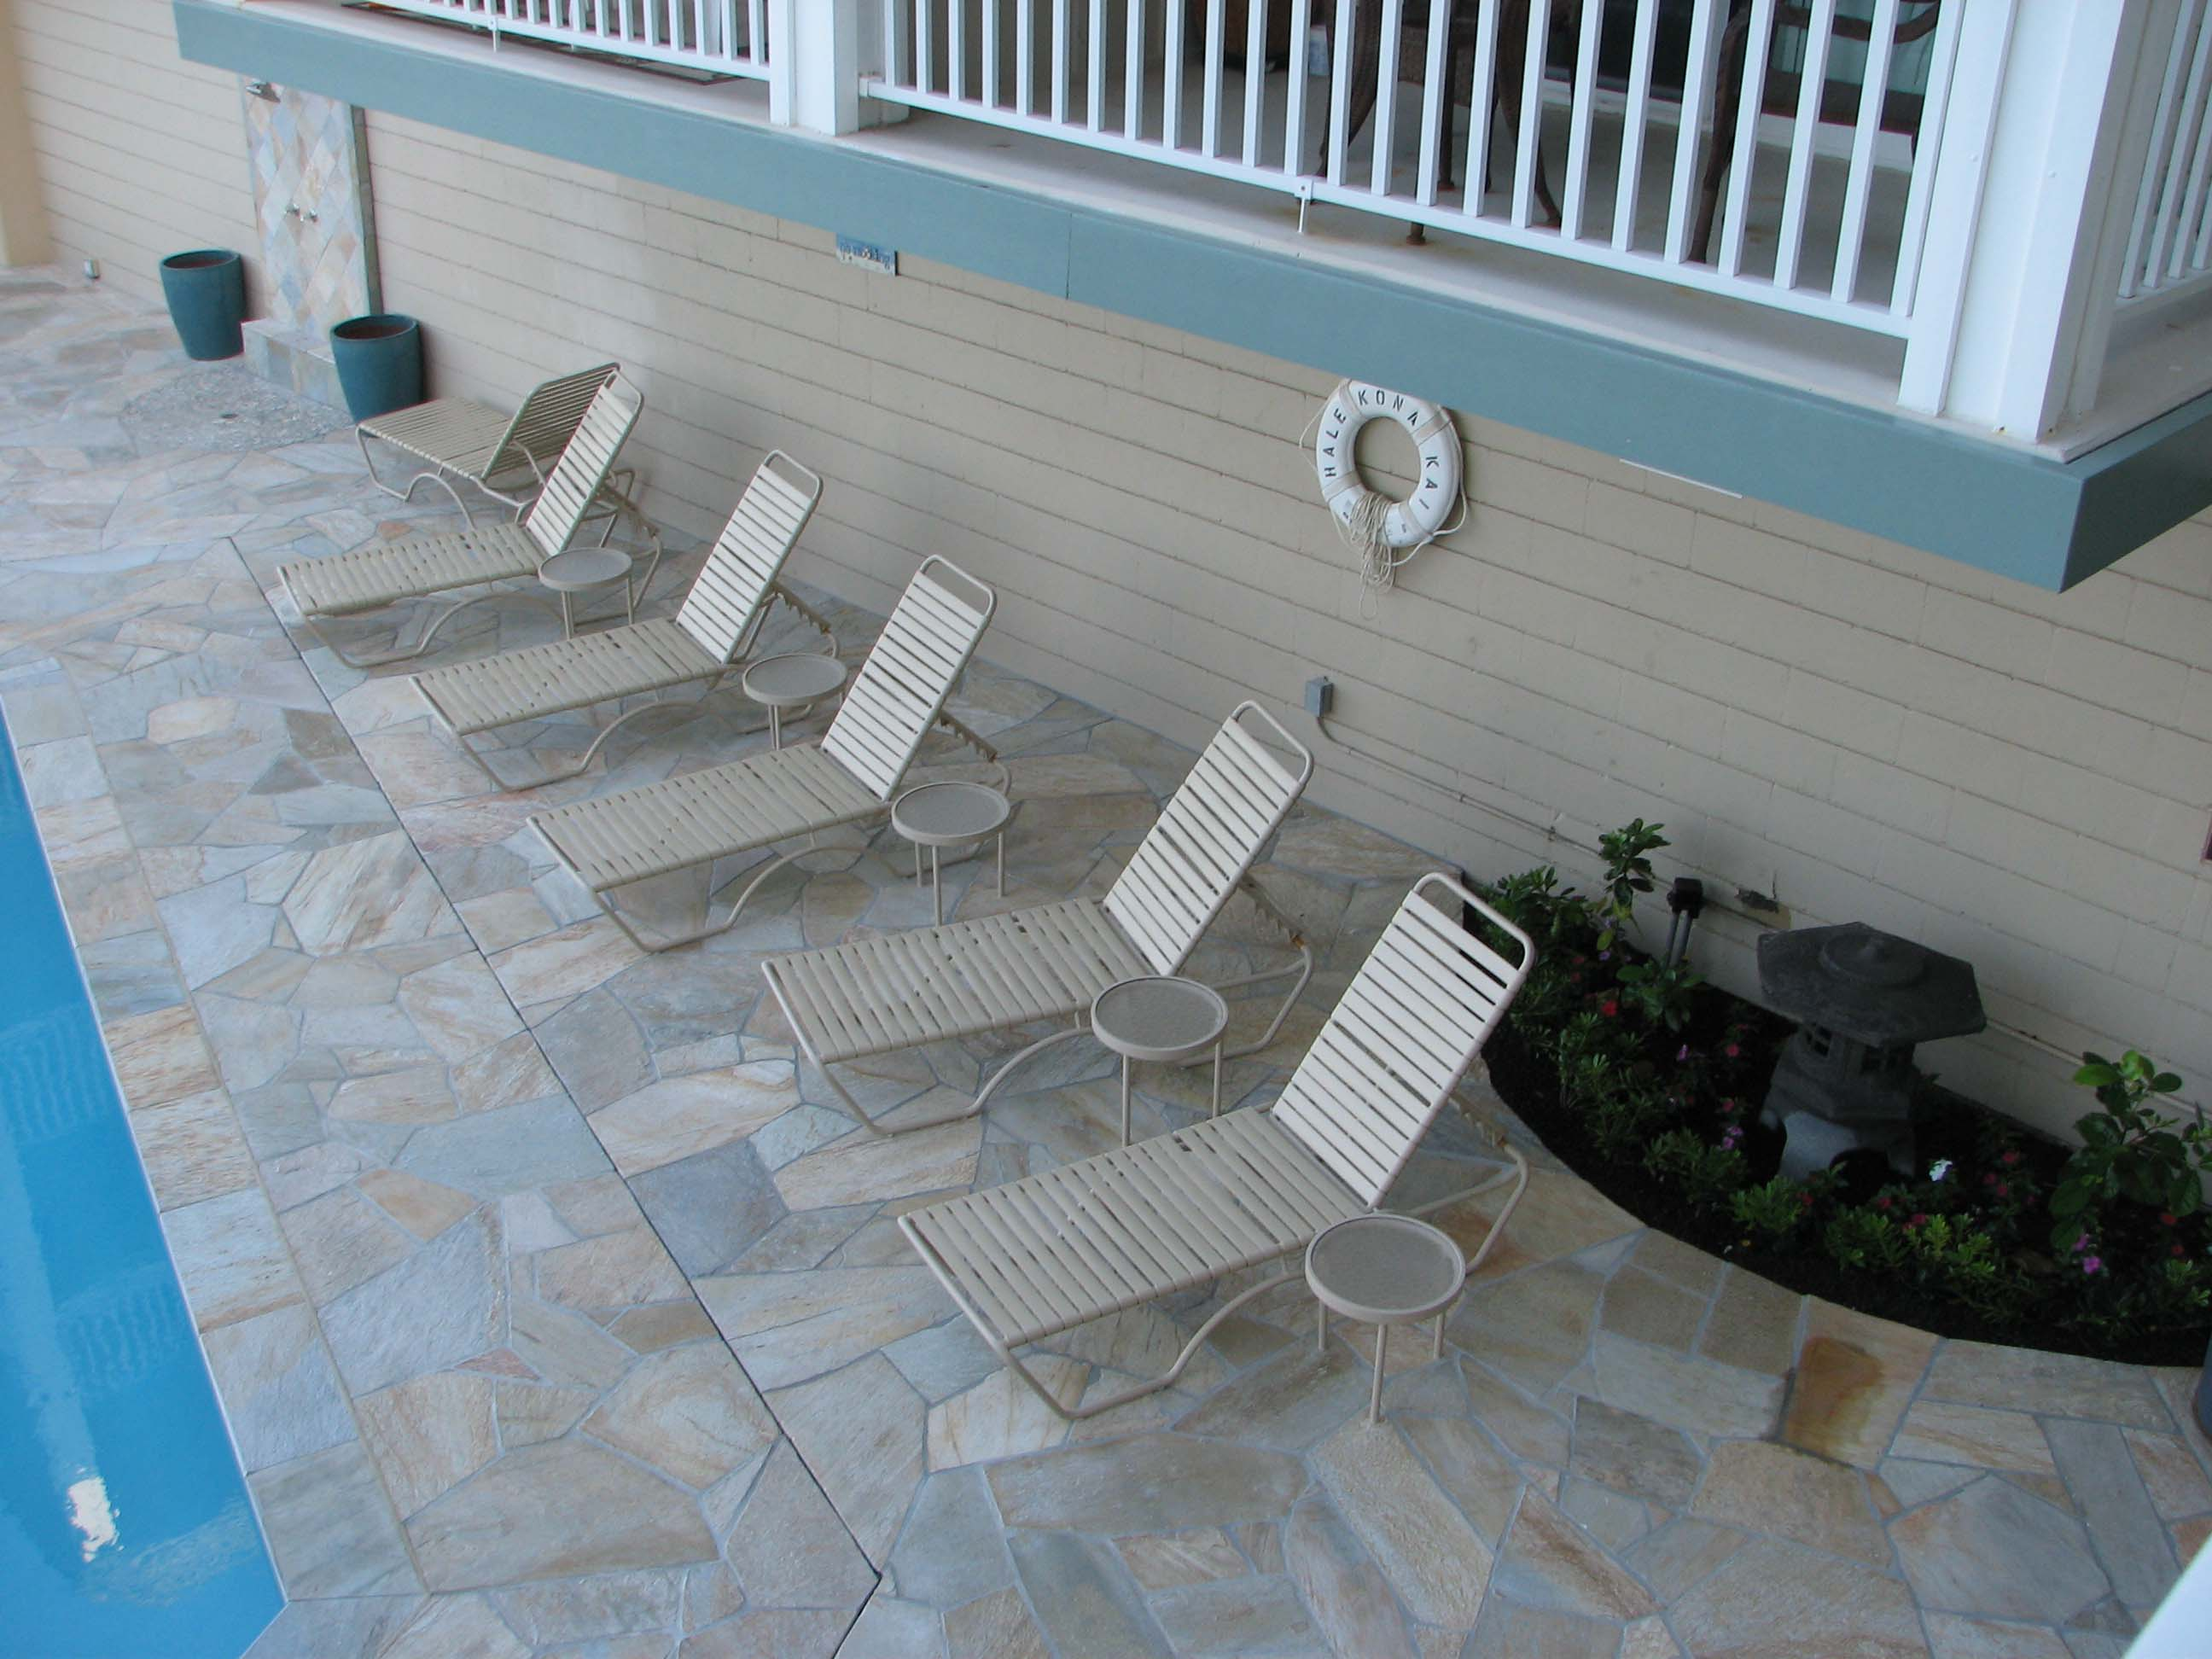 Chaise lounge chairs to enjoy the ocean and a book.